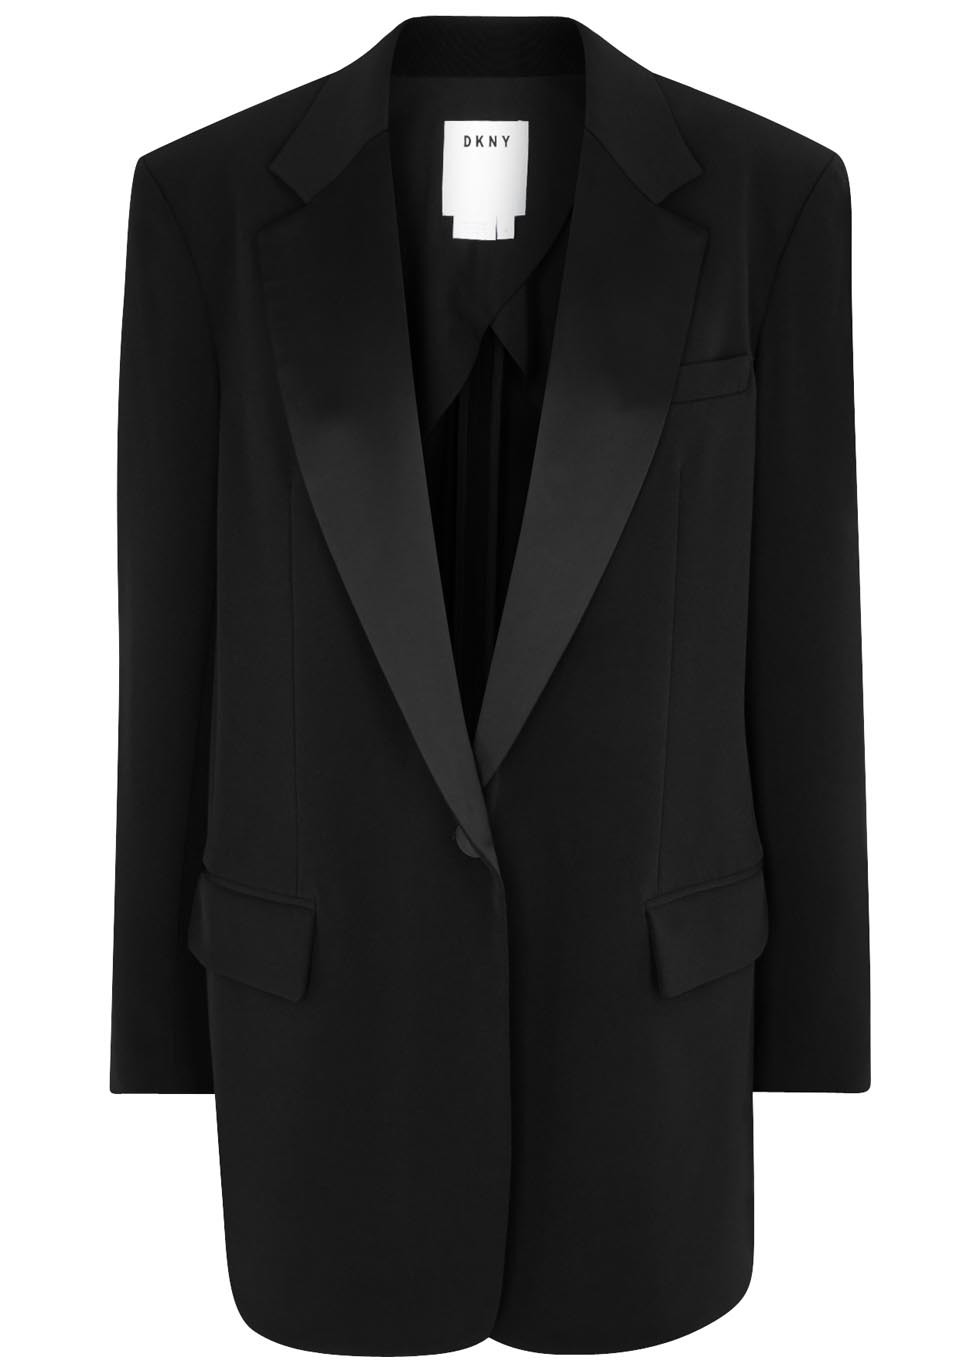 Black Faille Tuxedo Jacket - pattern: plain; style: single breasted tuxedo; length: below the bottom; collar: standard lapel/rever collar; predominant colour: black; occasions: evening; fit: straight cut (boxy); fibres: polyester/polyamide - mix; sleeve length: long sleeve; sleeve style: standard; collar break: low/open; pattern type: fabric; texture group: other - light to midweight; season: a/w 2016; wardrobe: event